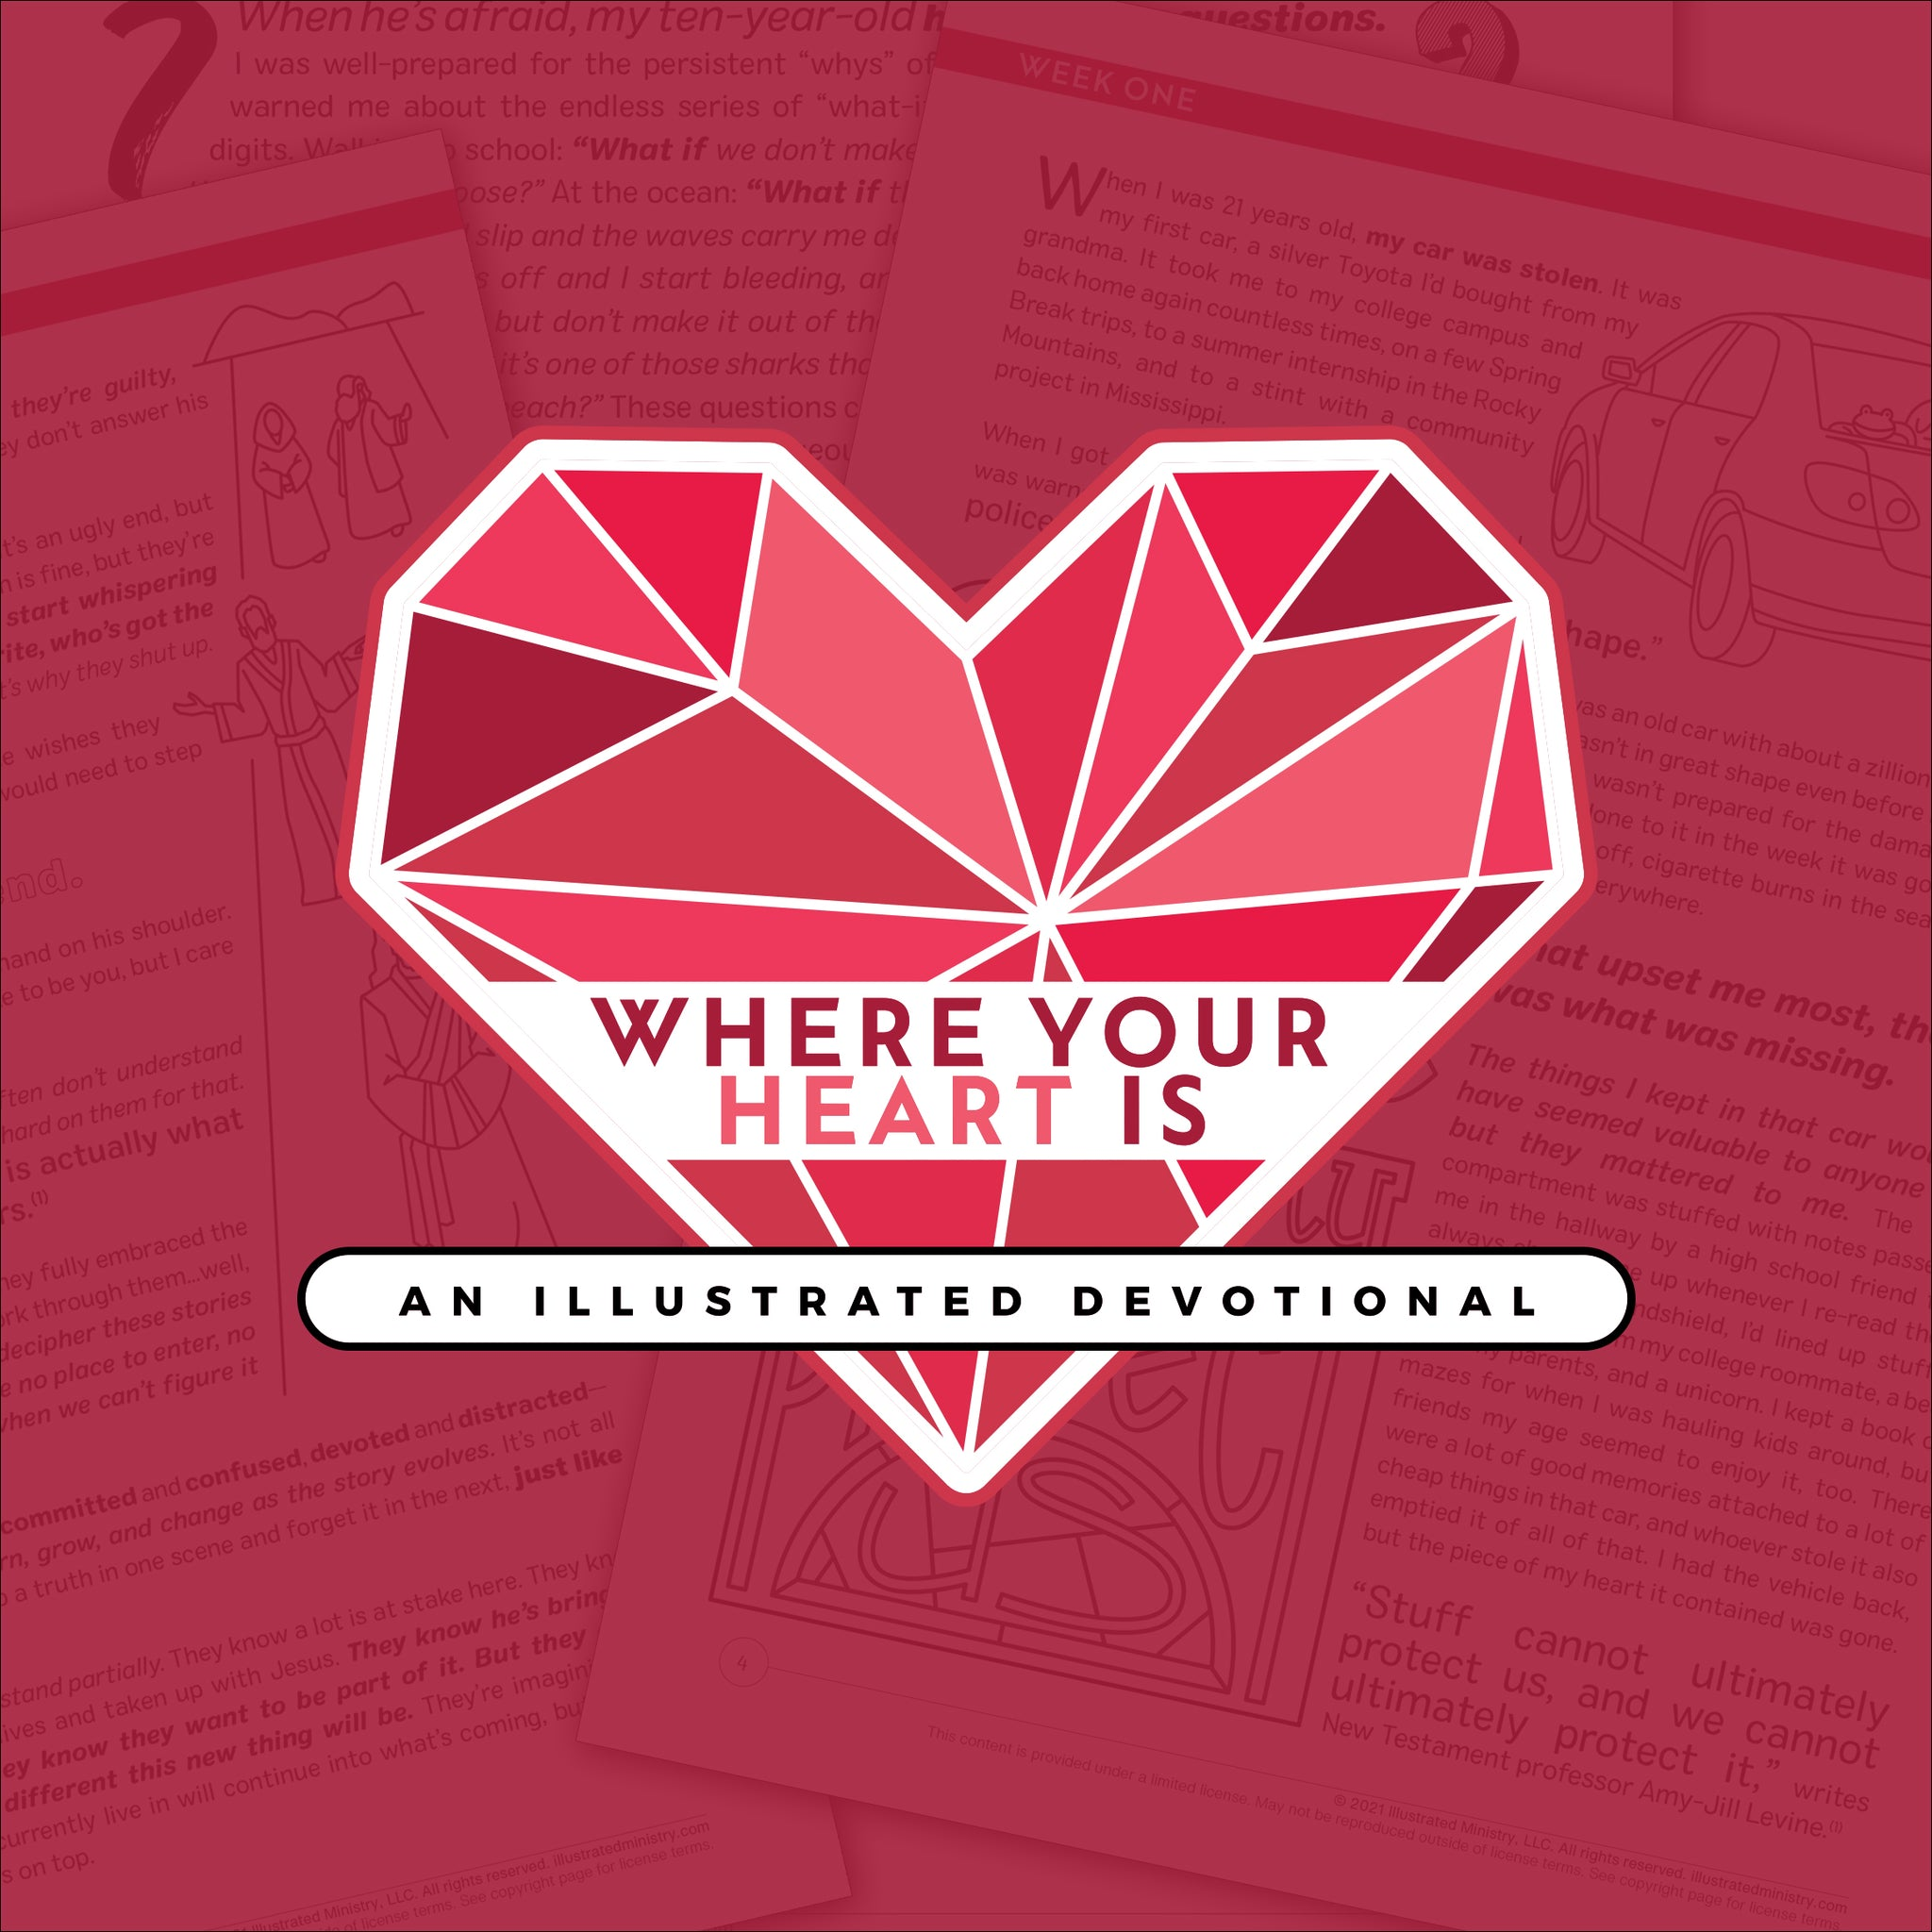 Where Your Heart Is: An Illustrated Devotional